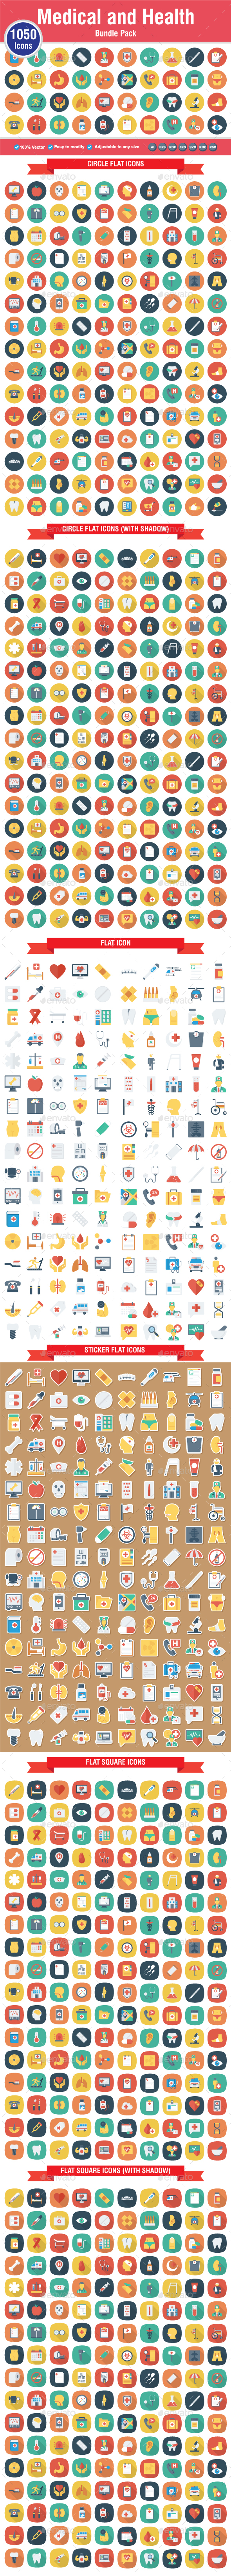 1050 Medical & Health Icons - Icons